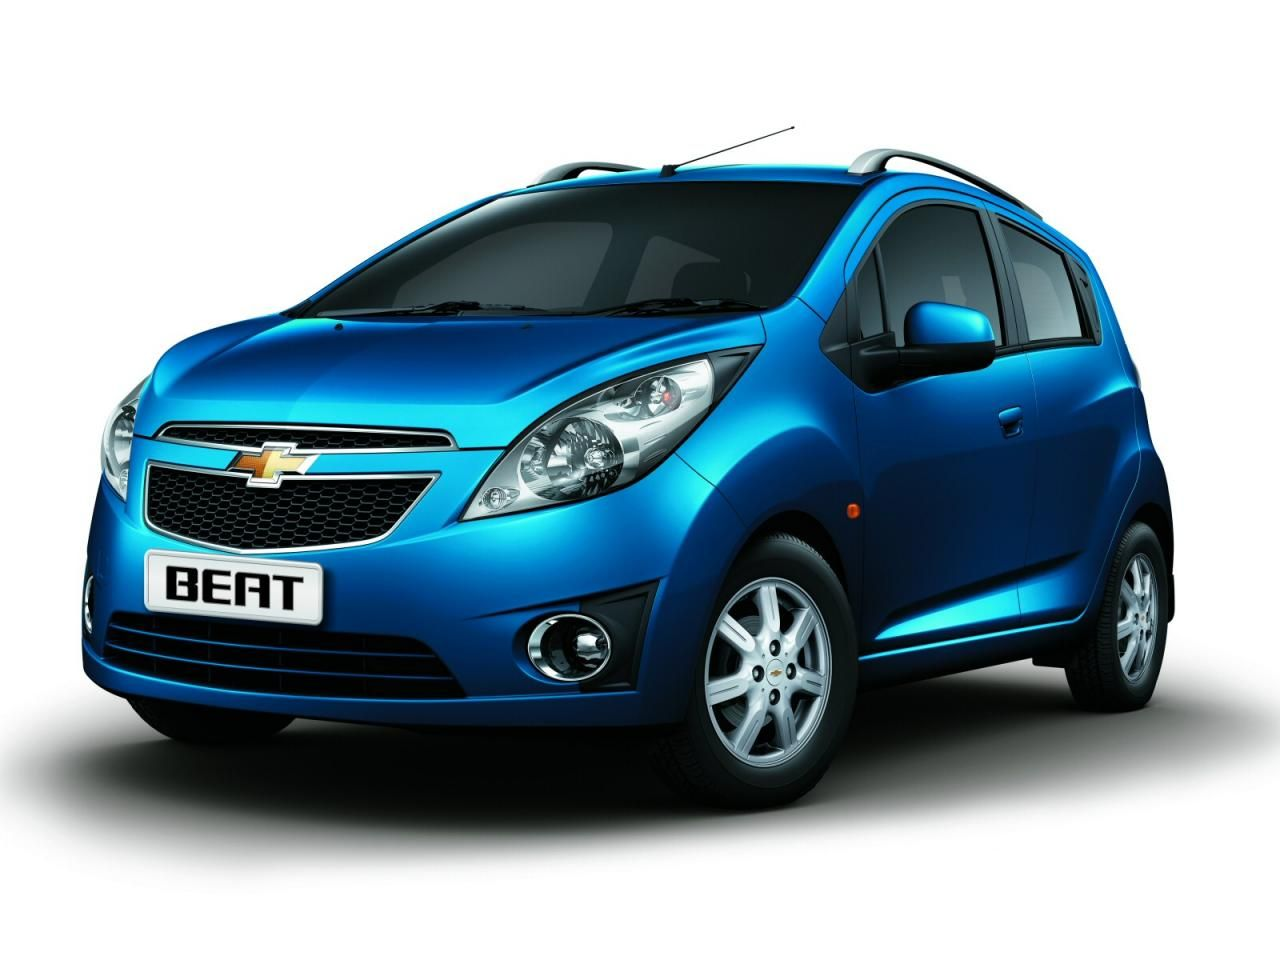 Http Www Carkhabri Com Carmodels Chevrolet Chevrolet Beat Chevrolet Beat Is India Launched Popular Premium Hatchback That Has B Best Small Cars Car Chevrolet